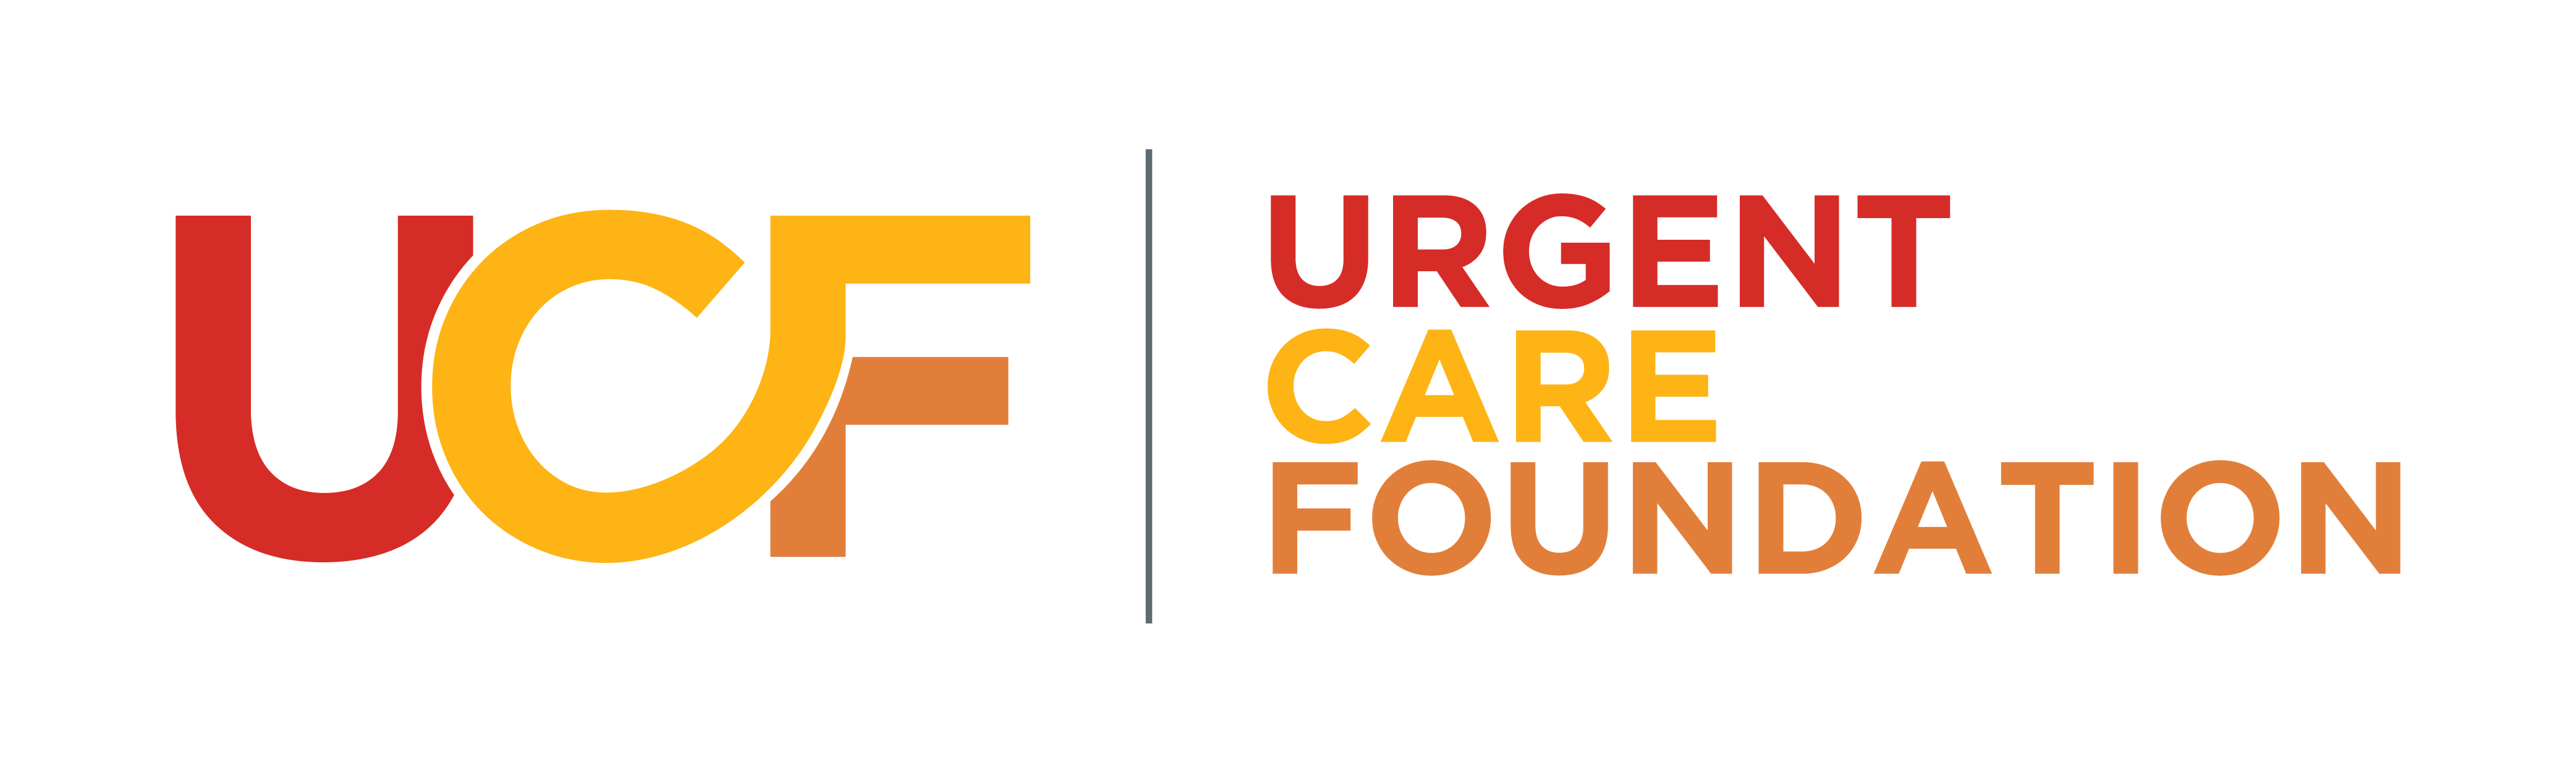 Urgent-Care-Foundation-logo